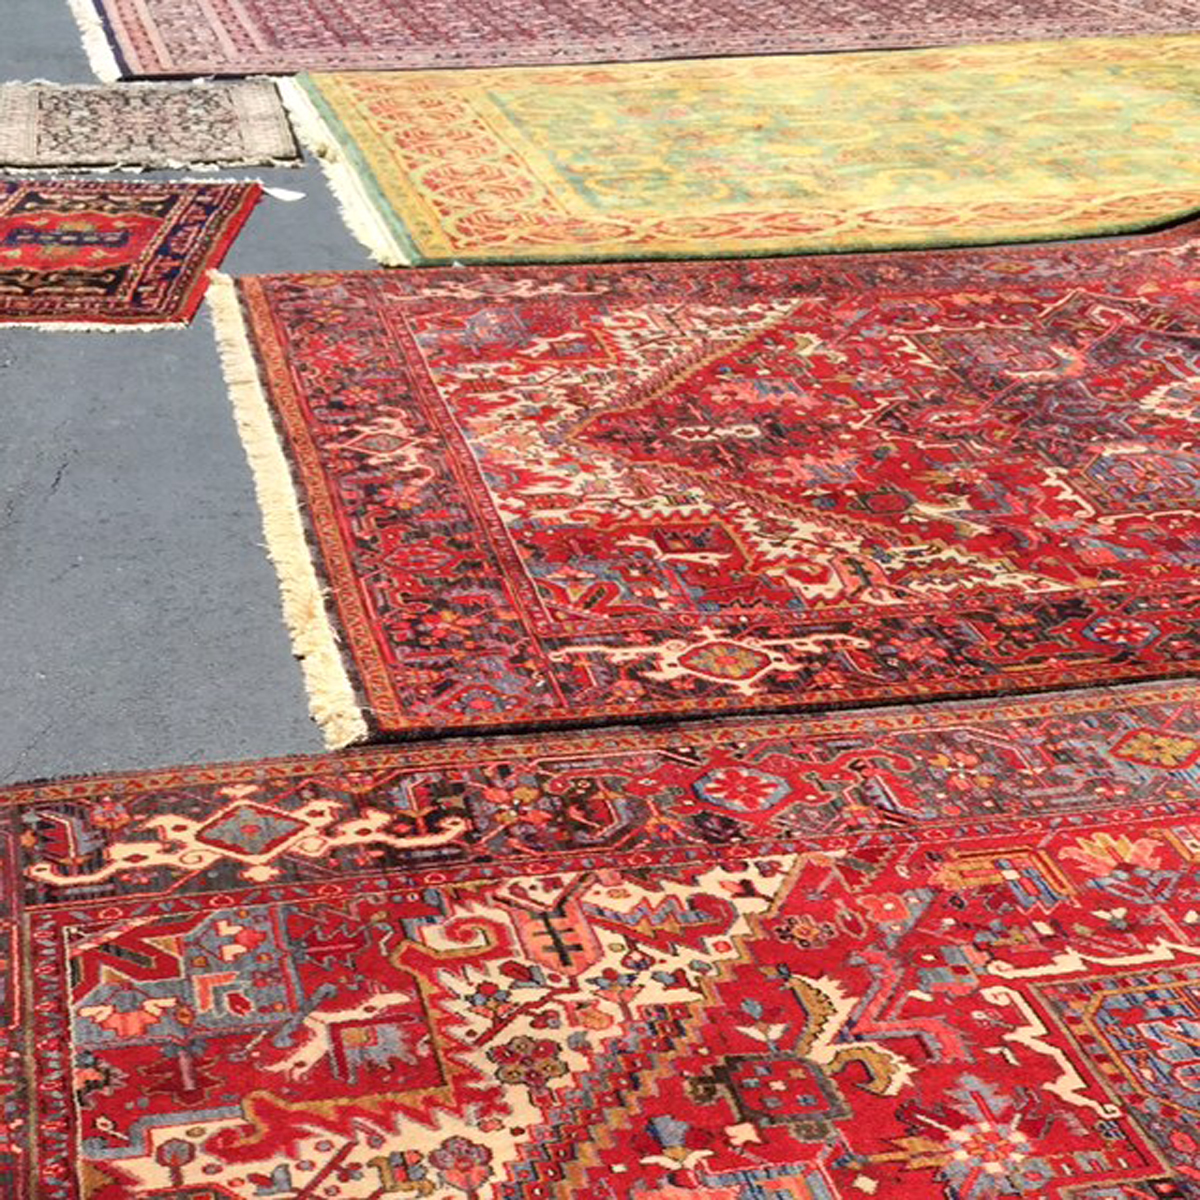 arlington off area rug cleaning per carpet from receive tx